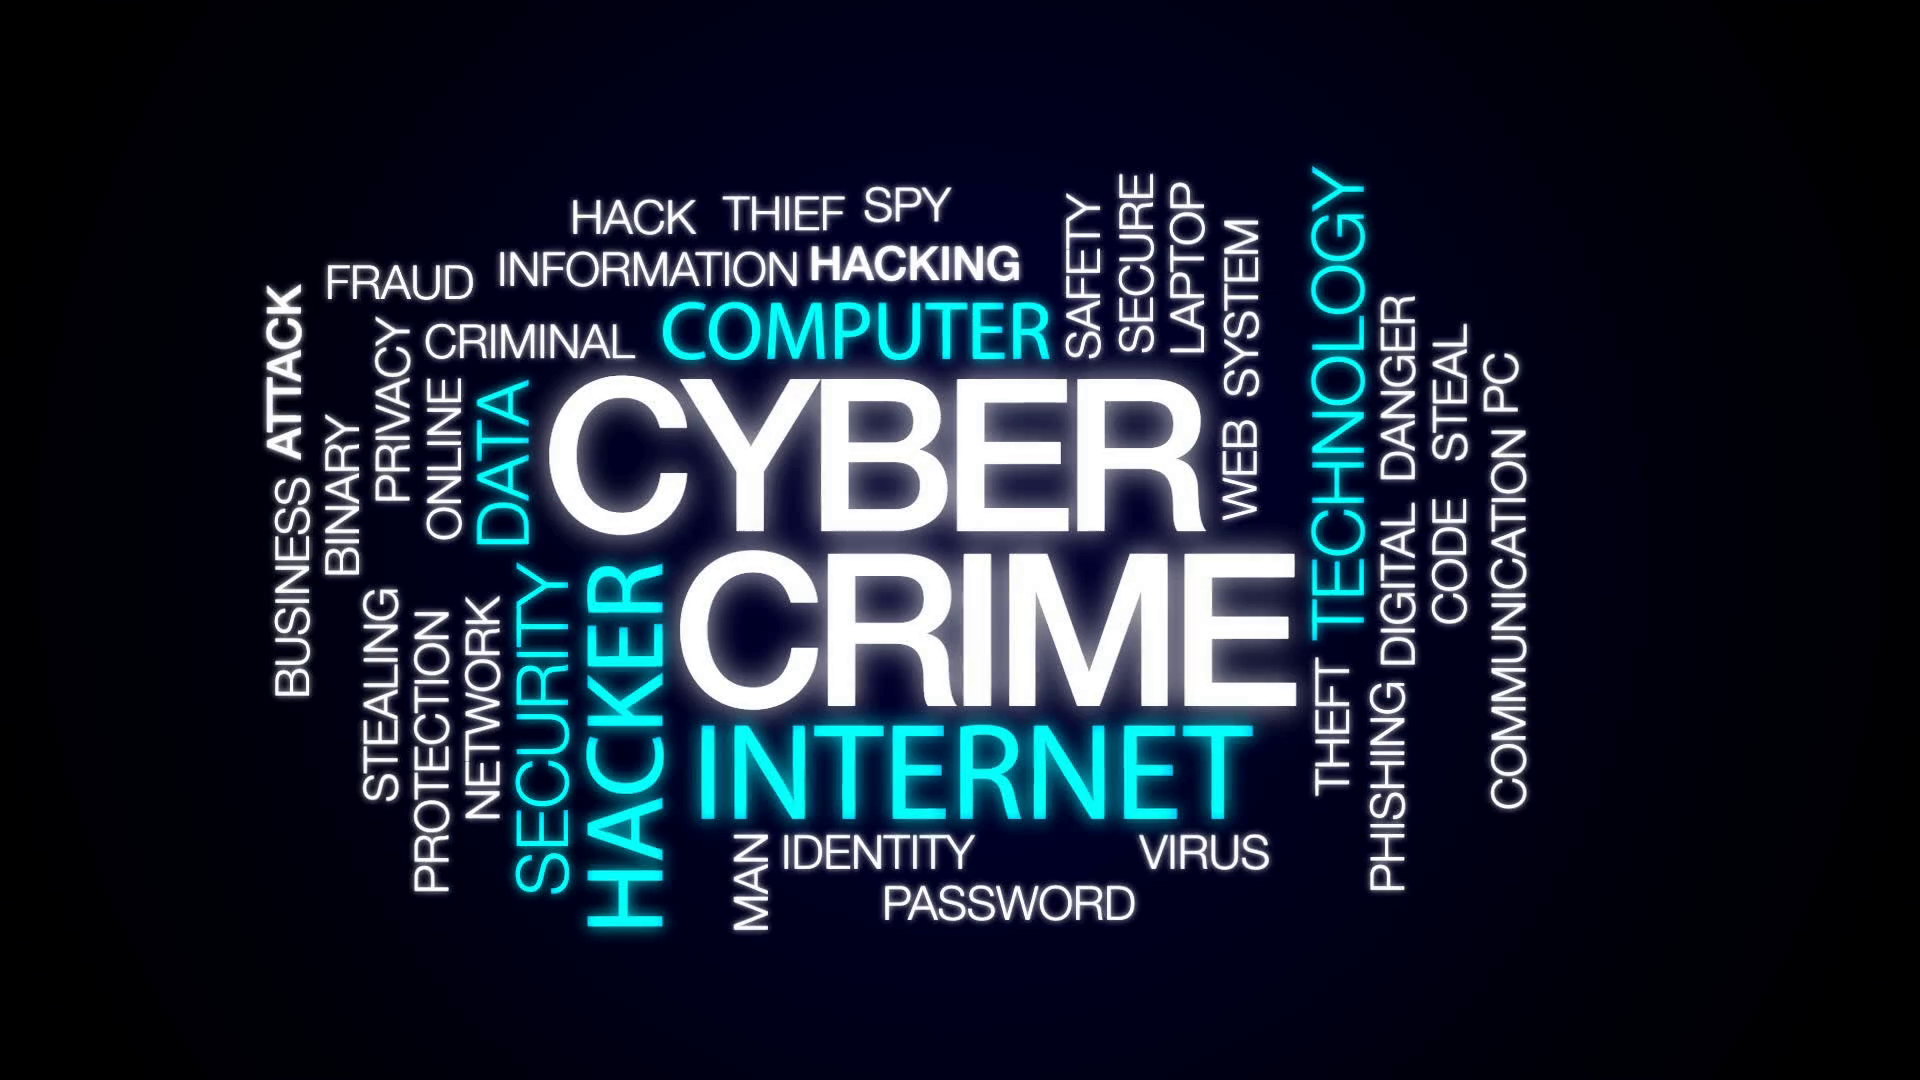 Cyber Crime Cyber Law Cyber Ethics Commandments Piracy